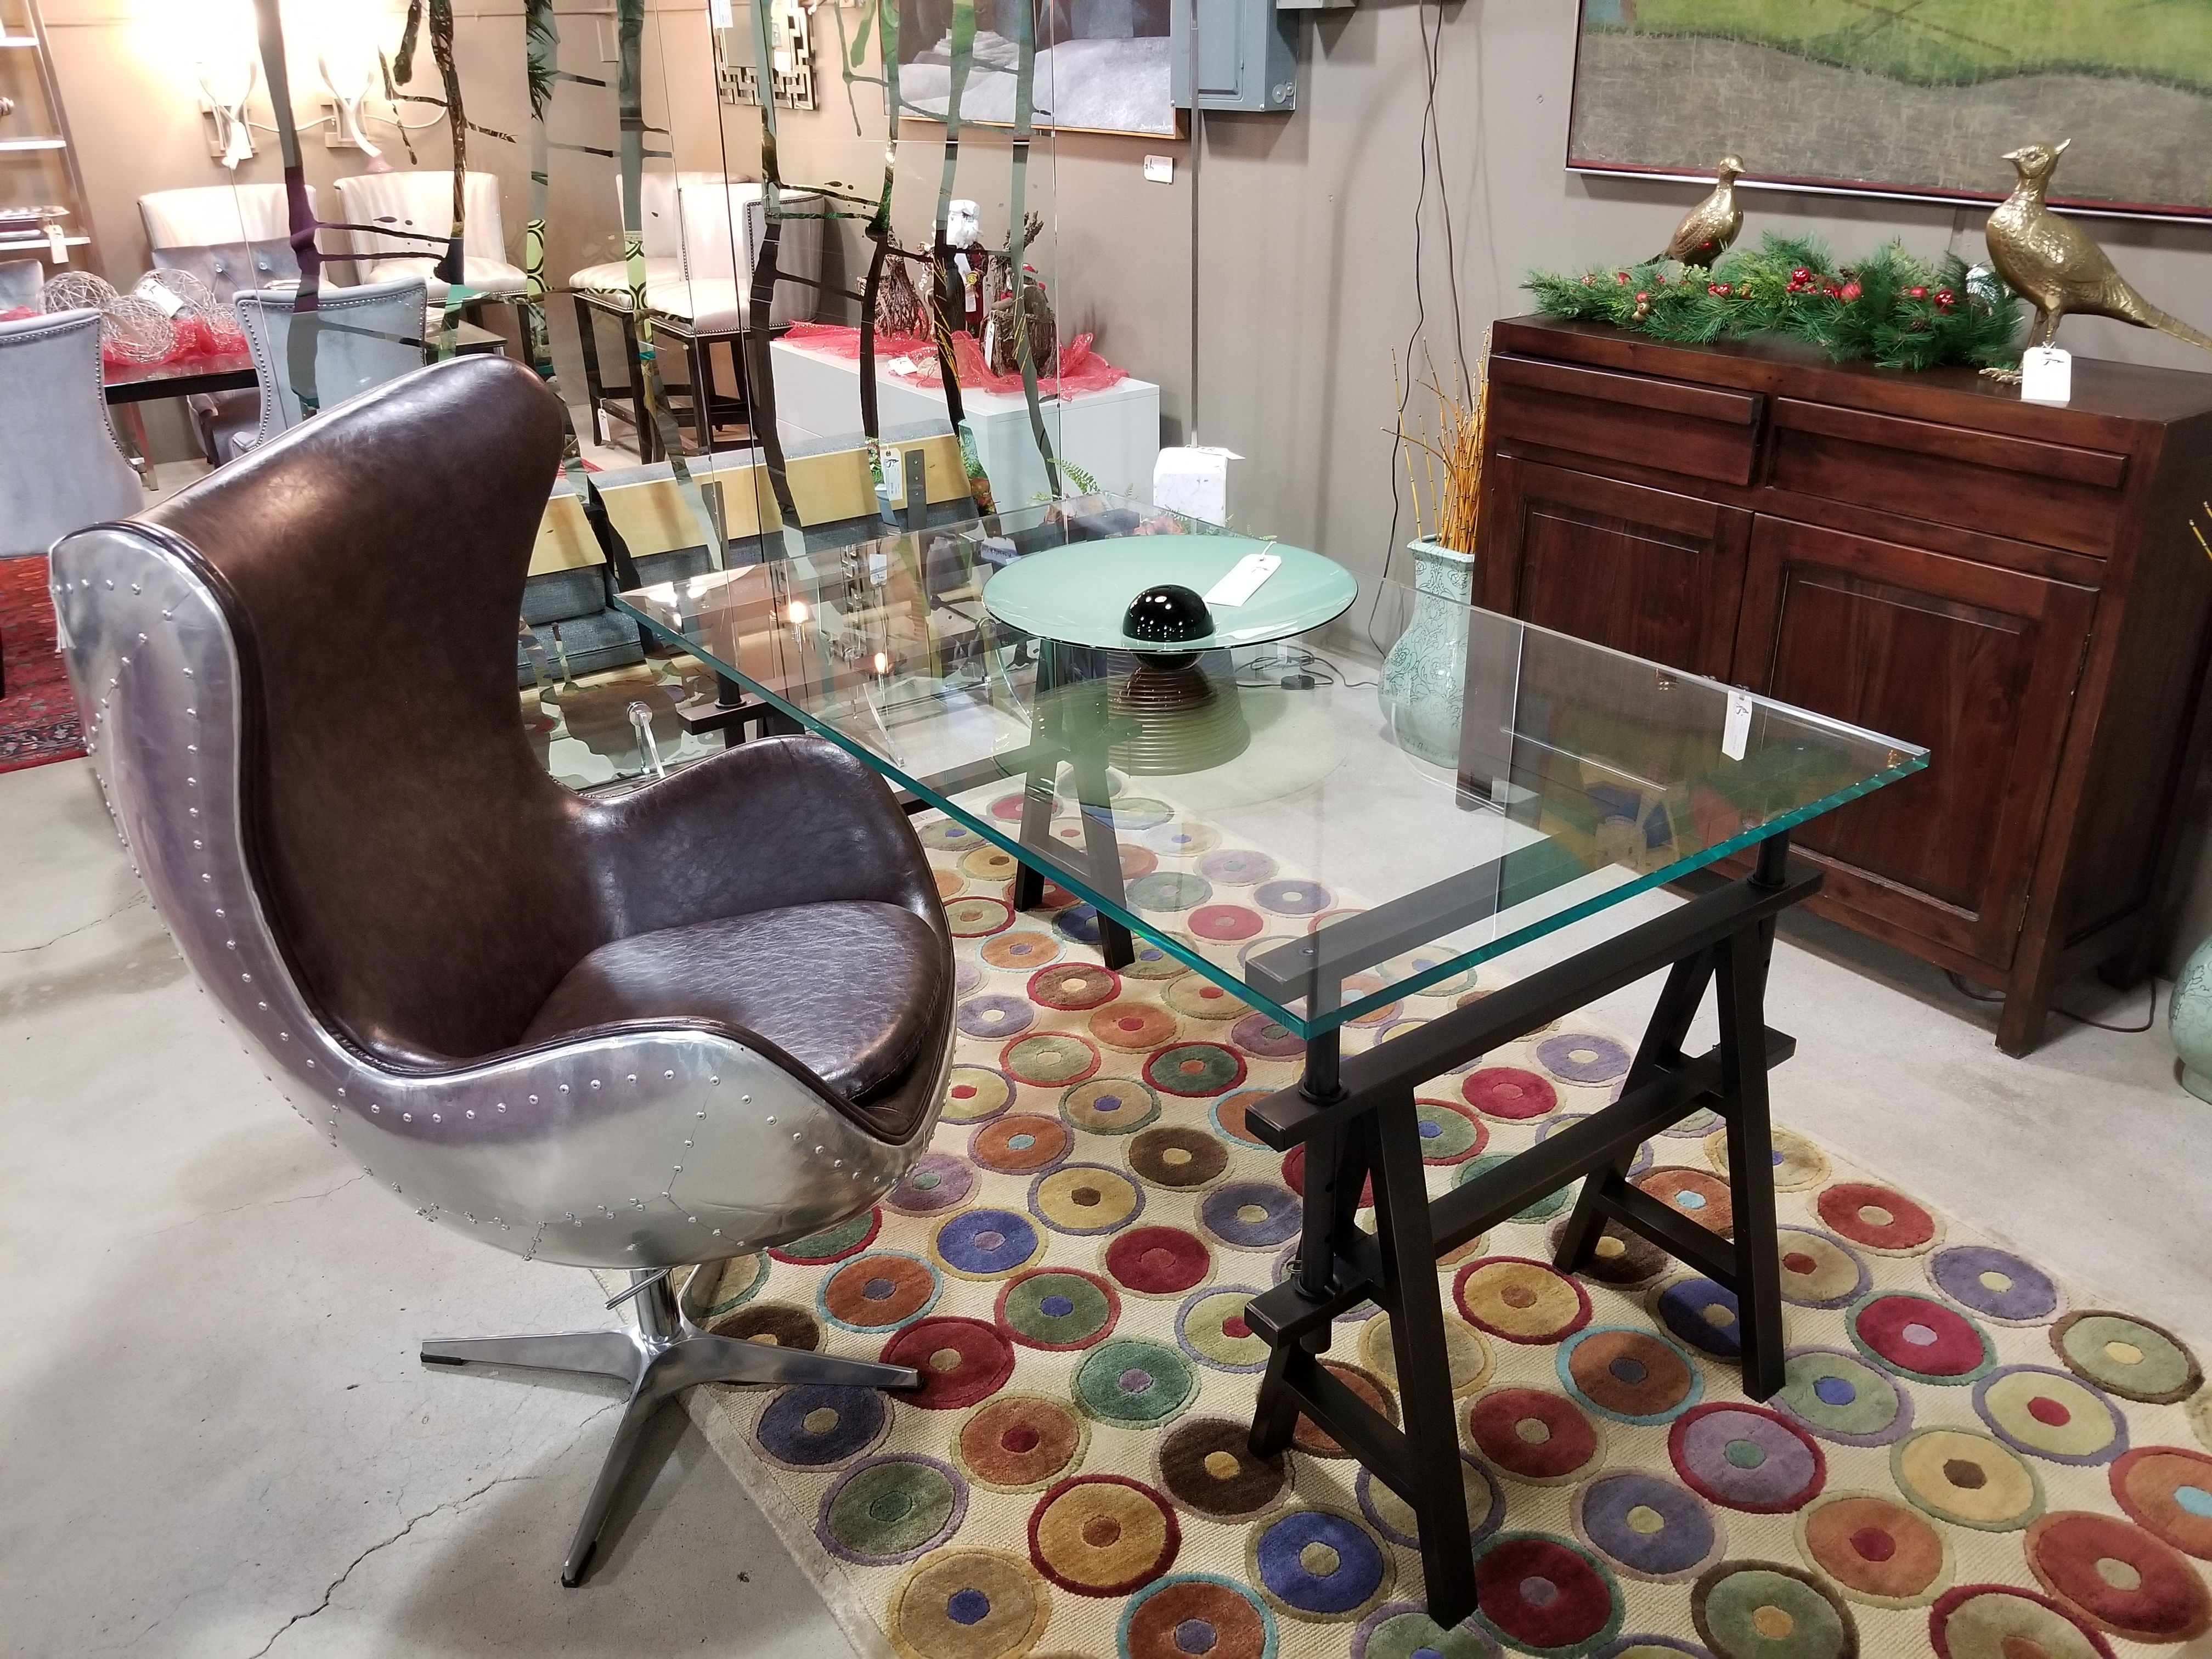 Restoration Hardware Industrial Glass Desk With Sawhorse Legs Measures 60u2033W  X 36u2033D X 30u2033H, Priced At $995 U2014 SOLD Aviator Swivel Chair With Brown Faux  ...